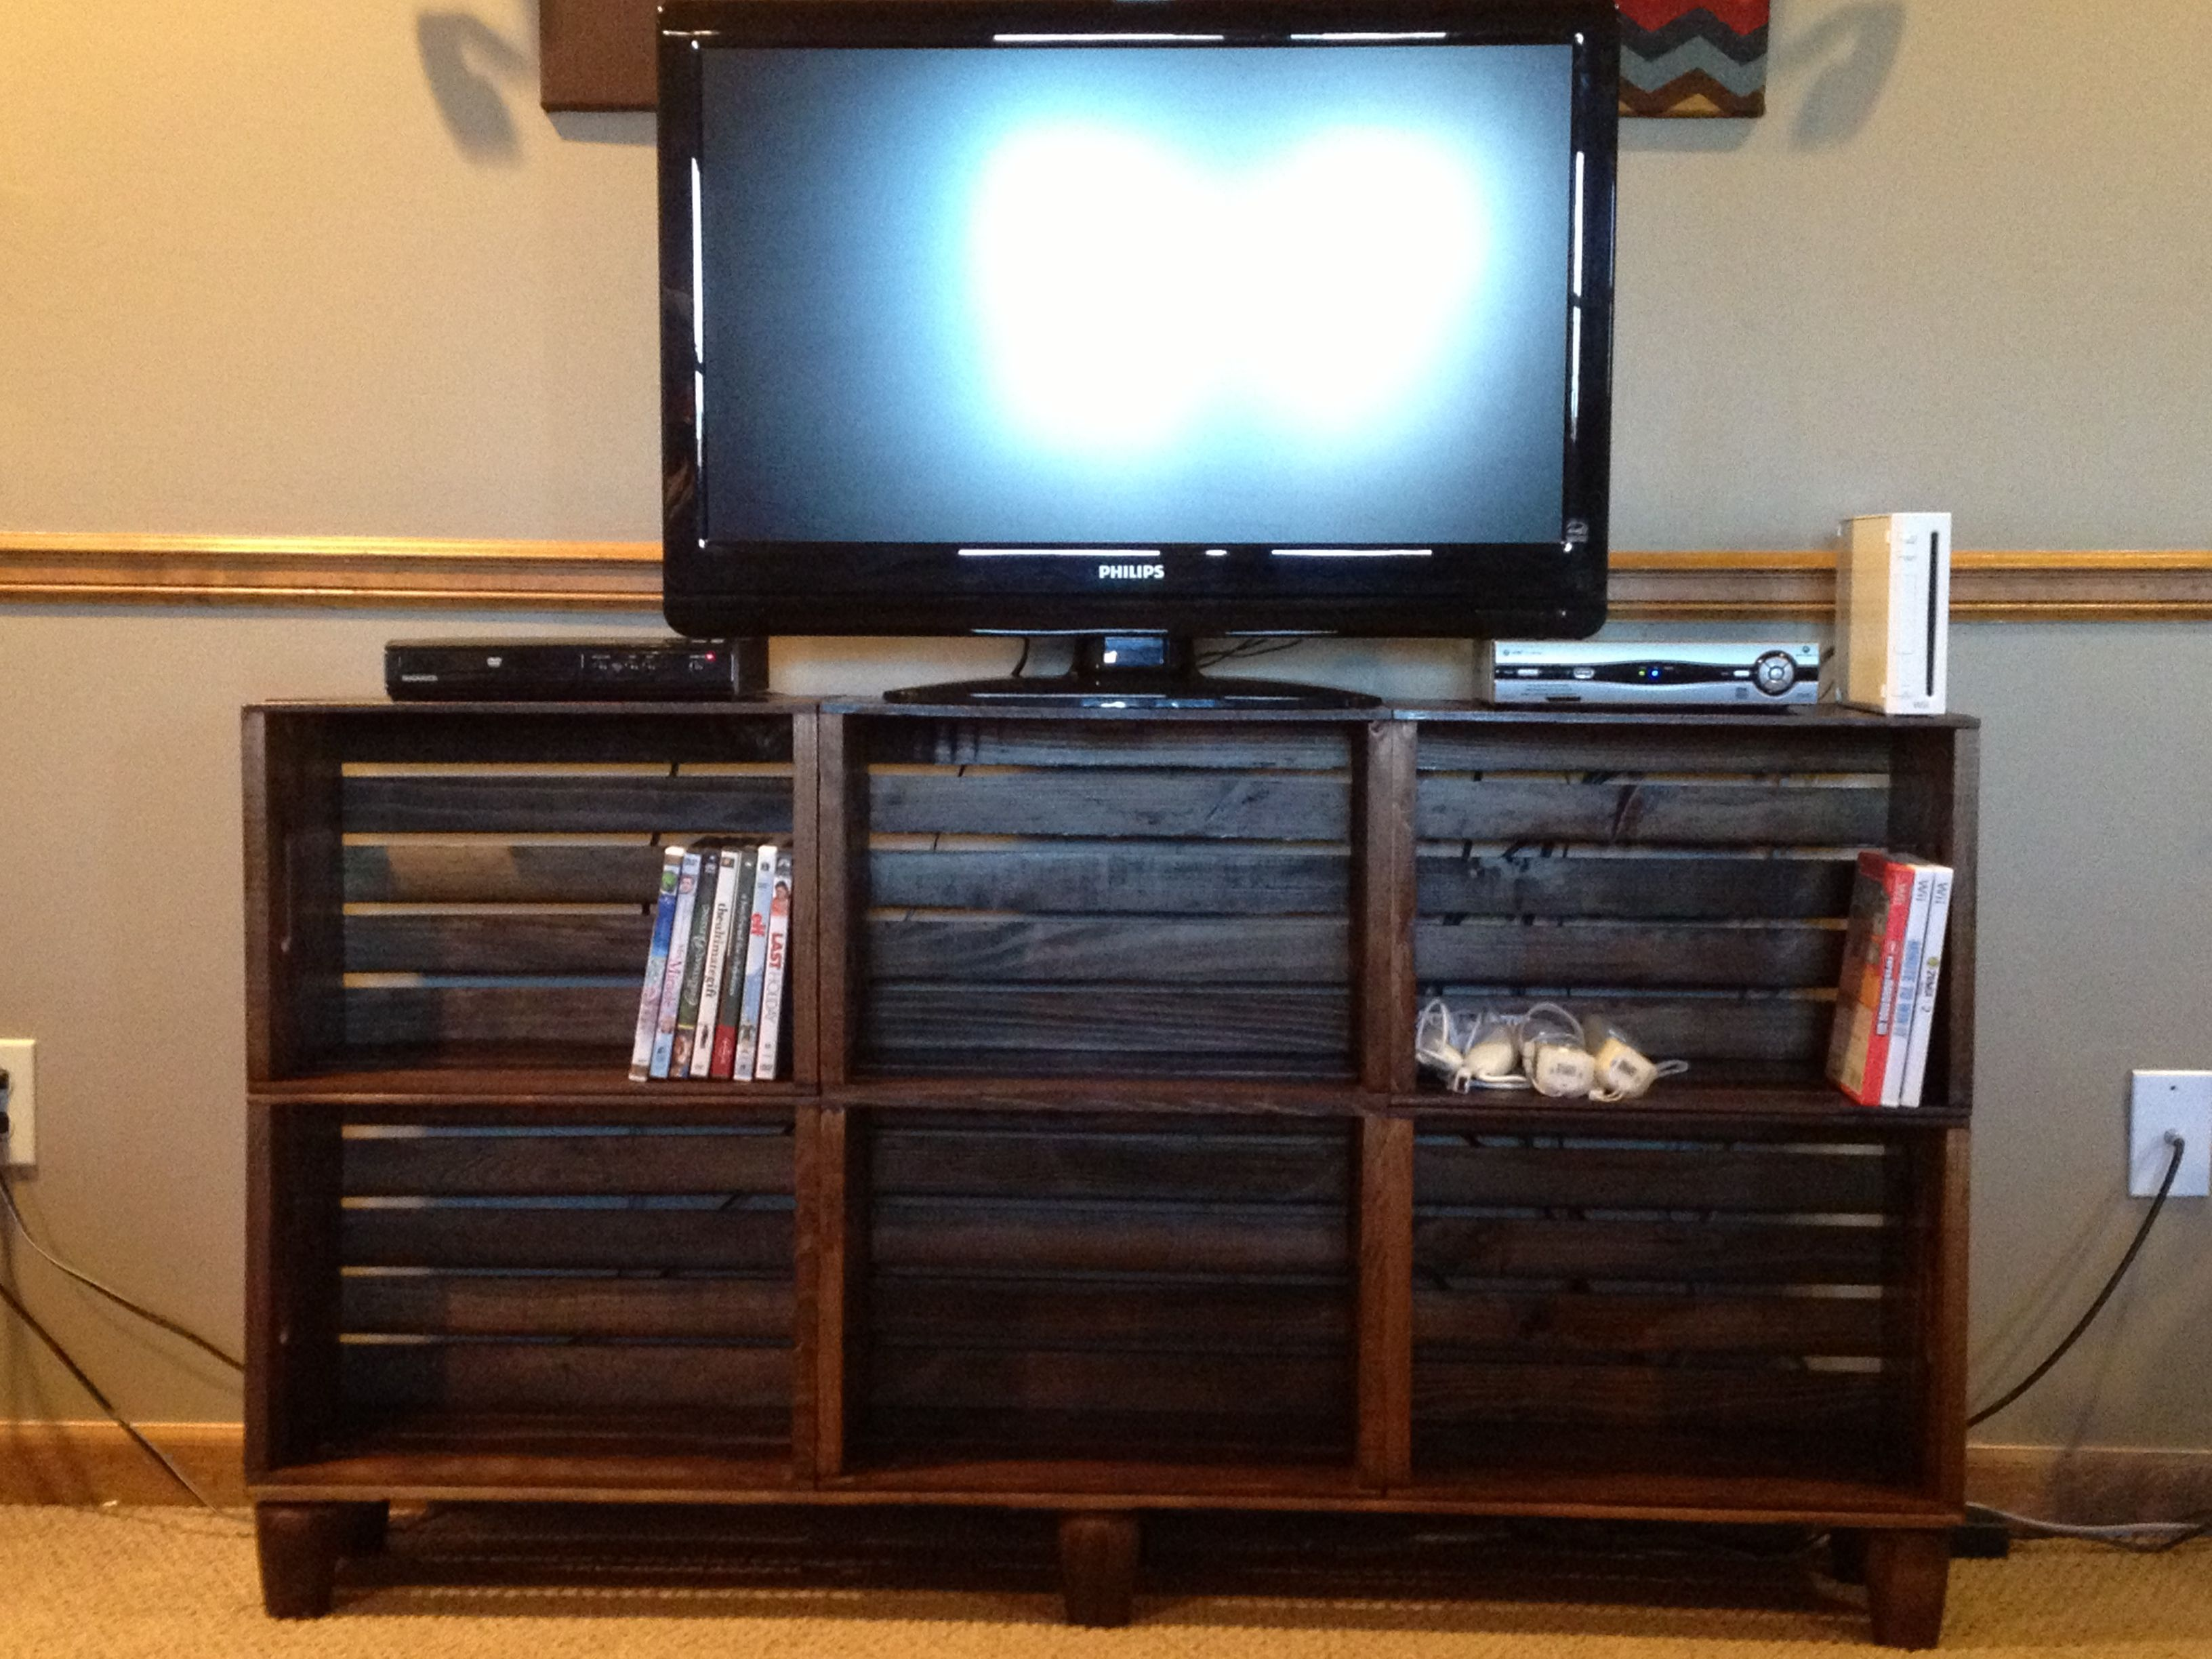 Tv stand made from crates matches the coffee table for the home tv stand made from crates matches the coffee table geotapseo Choice Image